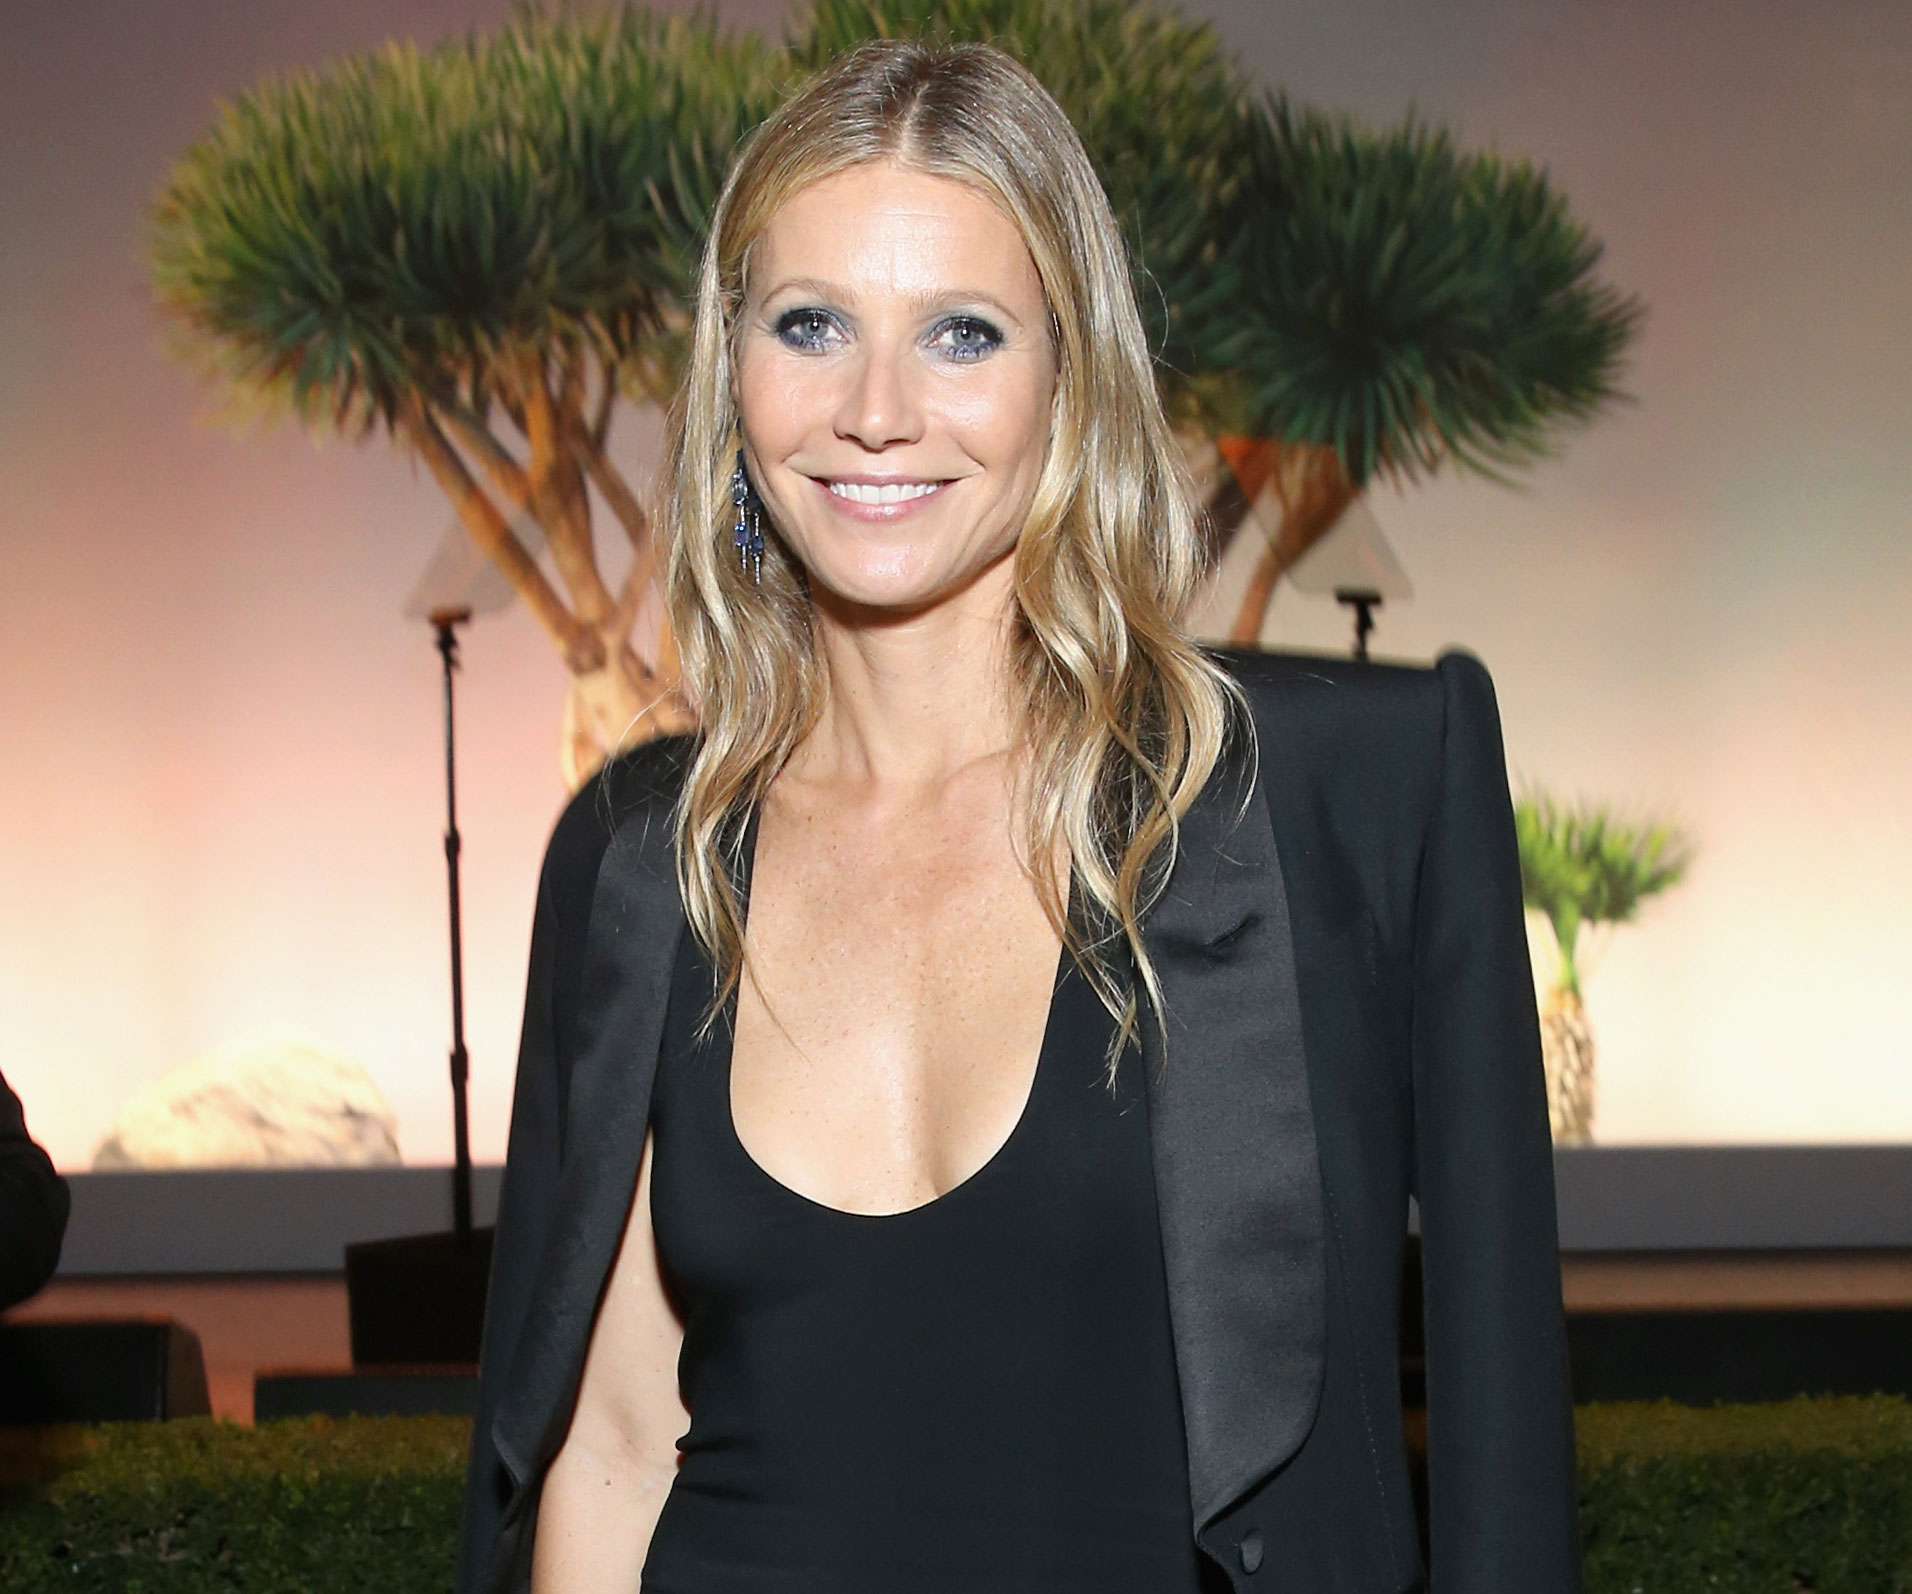 Gwyneth Paltrow And Brad Falchuk Are Engaged, Sources Say